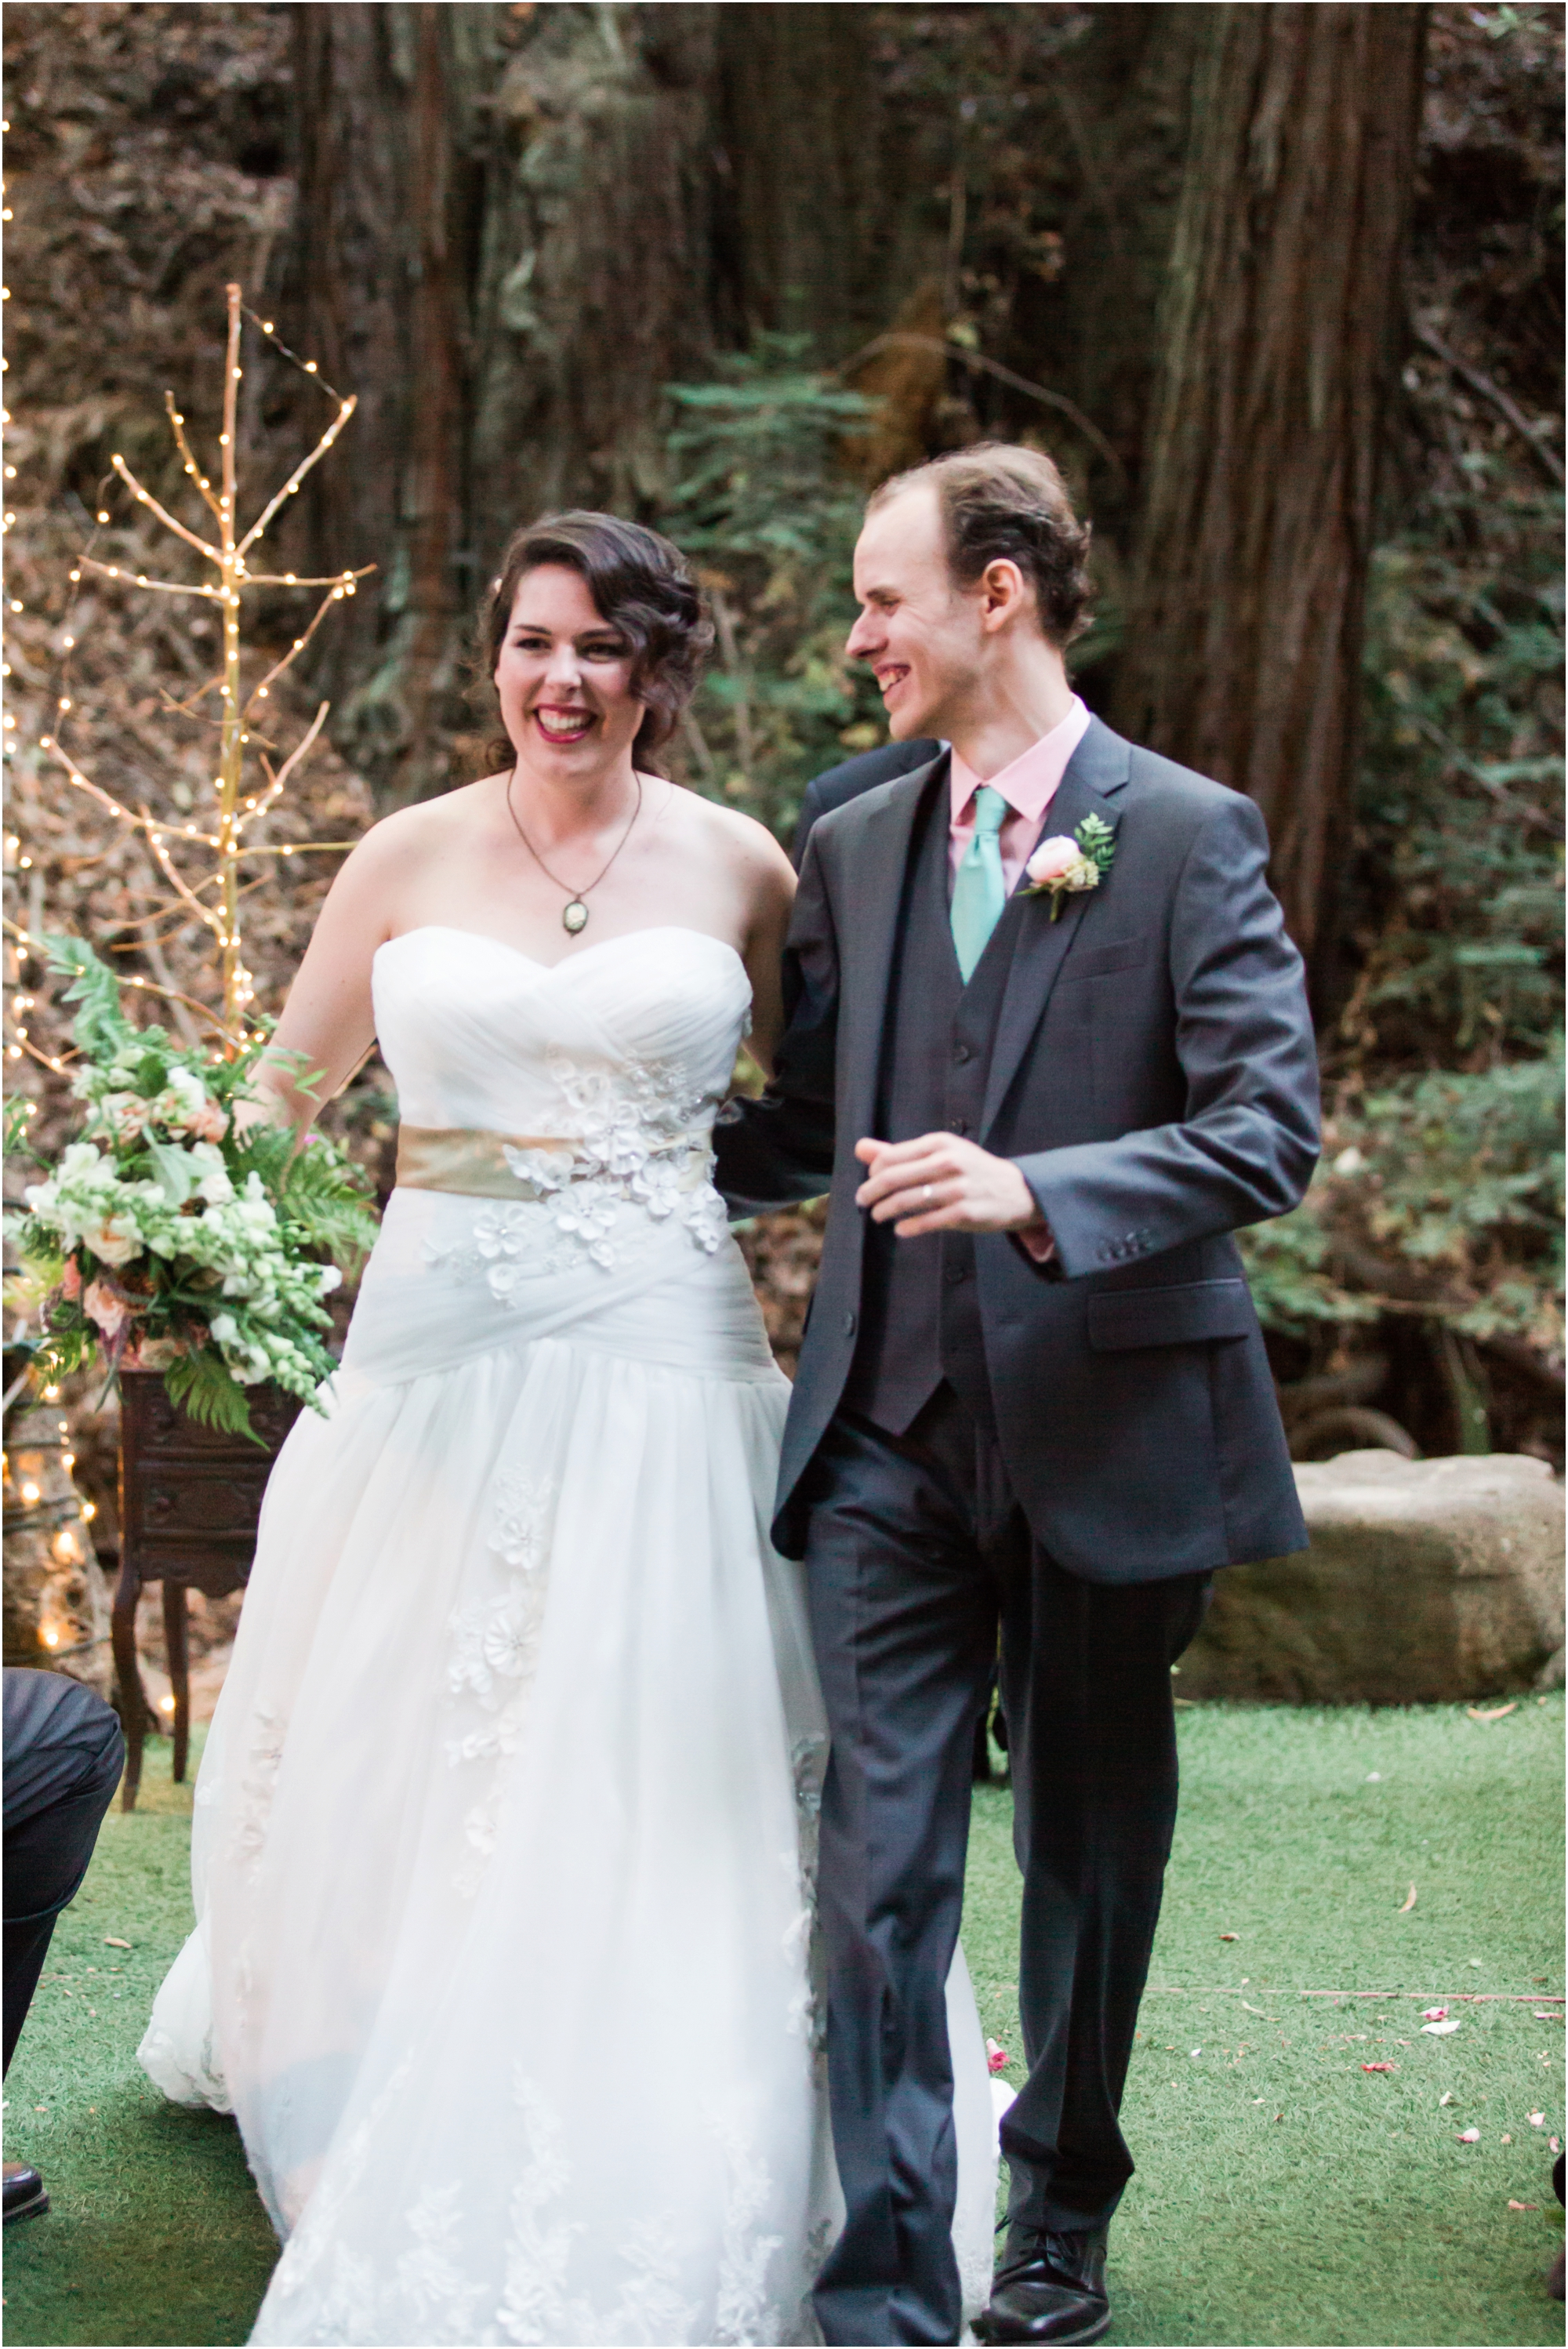 Saratoga Springs wedding pictures by Briana Calderon Photography_1892.jpg